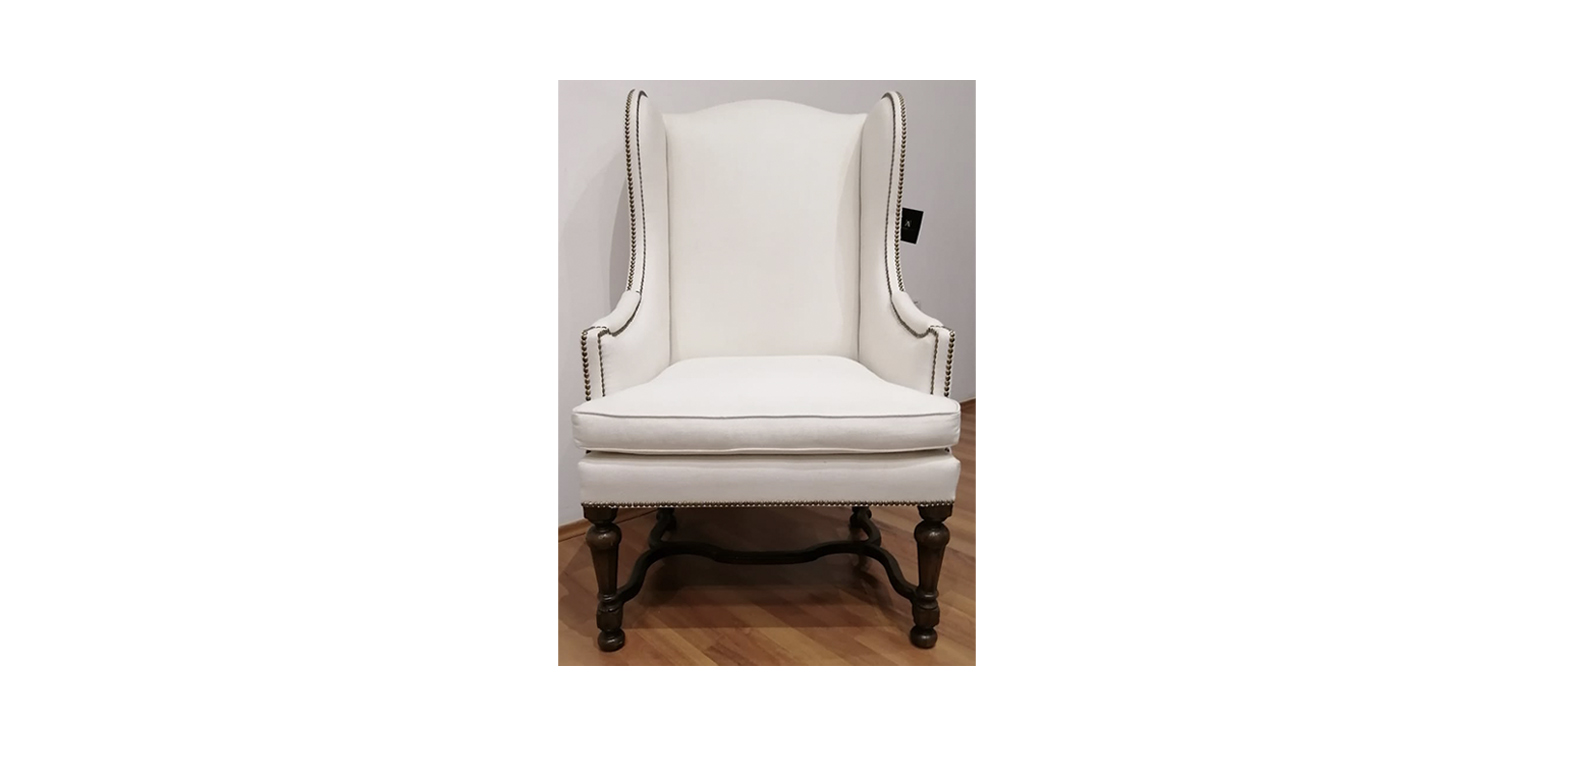 NORMANDIE CHAIR